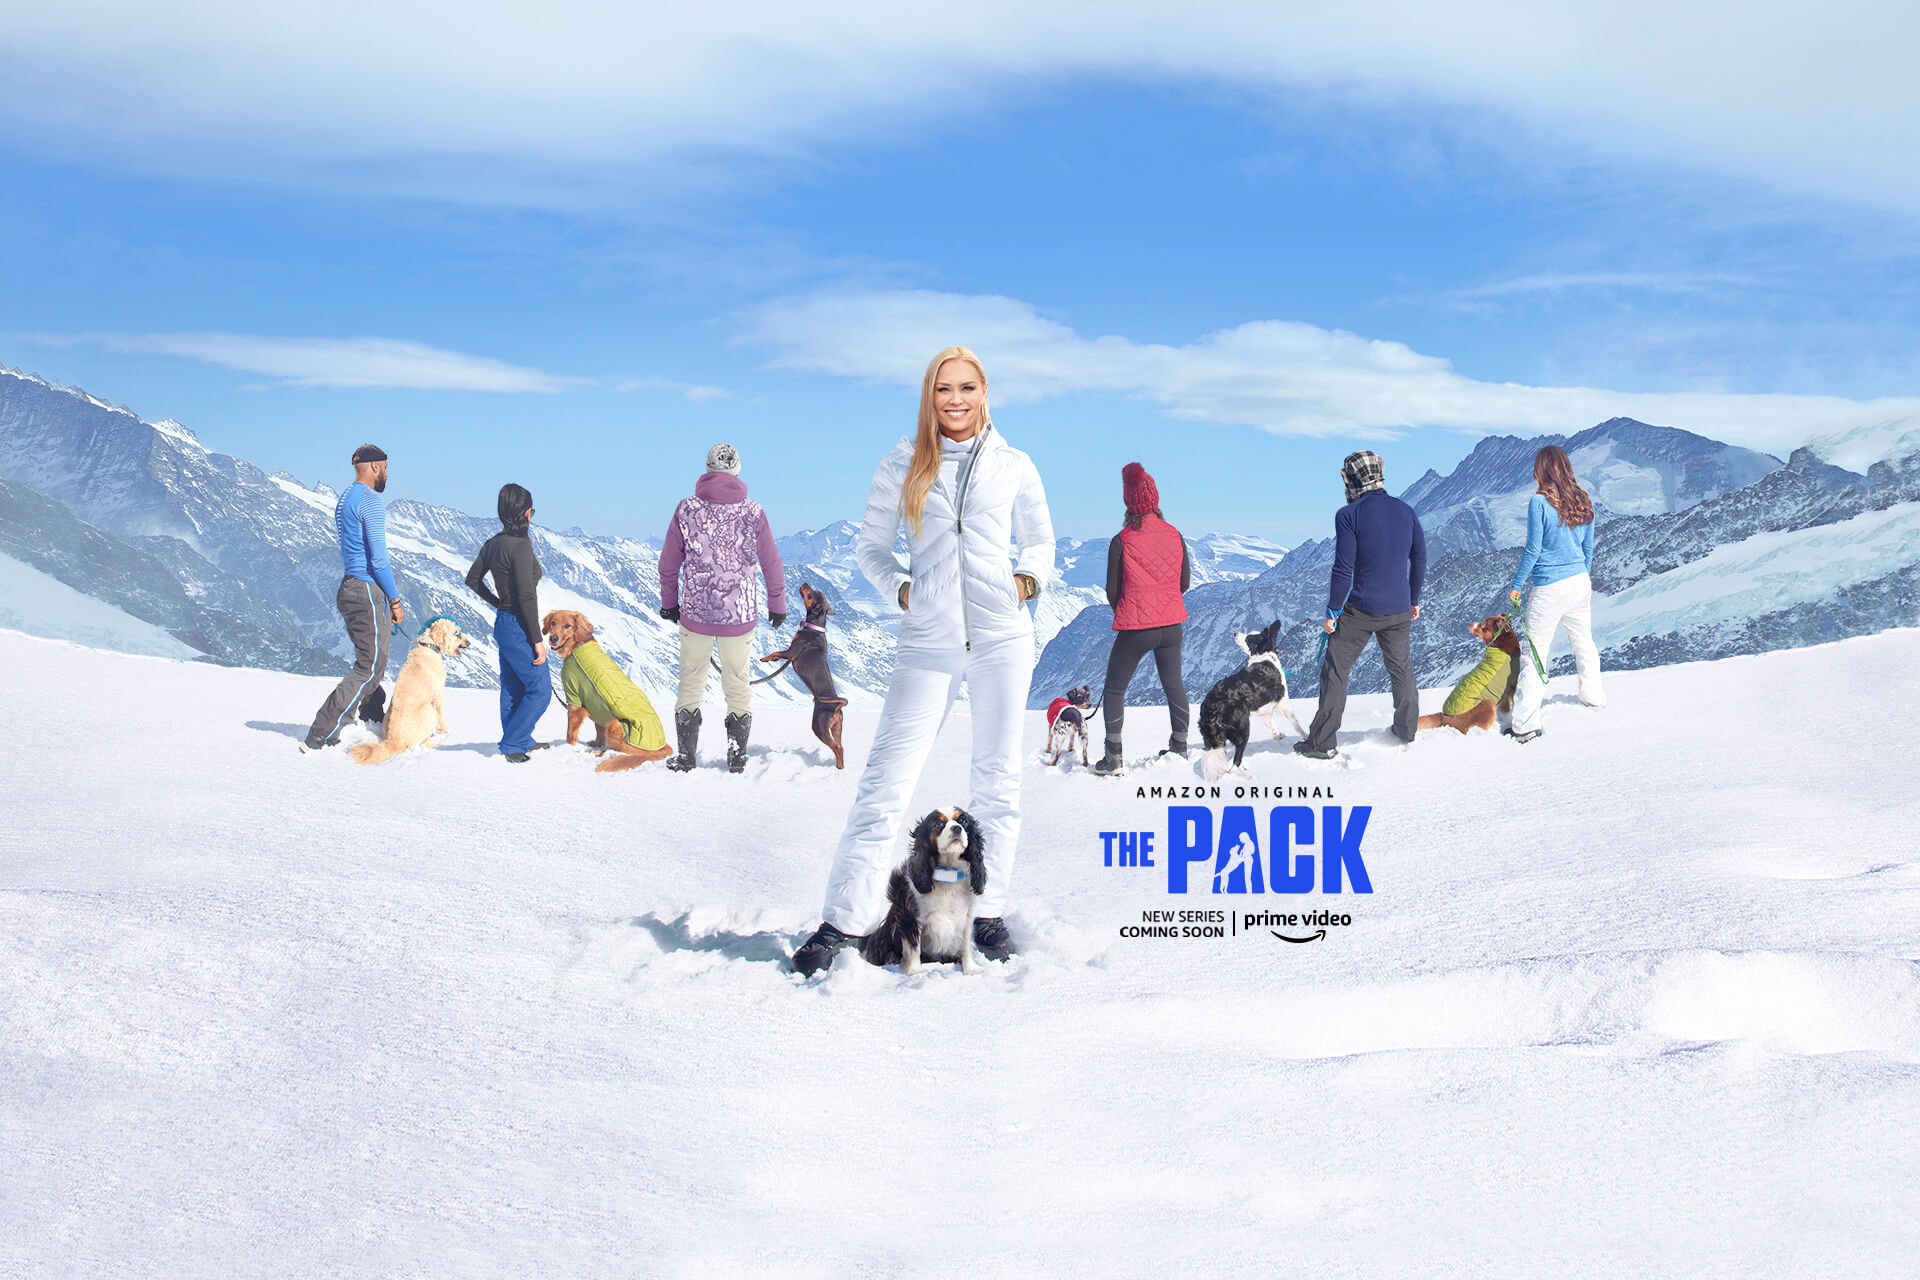 Tractive joins Amazon Original Series The Pack and Local Pet Shelters on a Global, Four-Legged Adventure